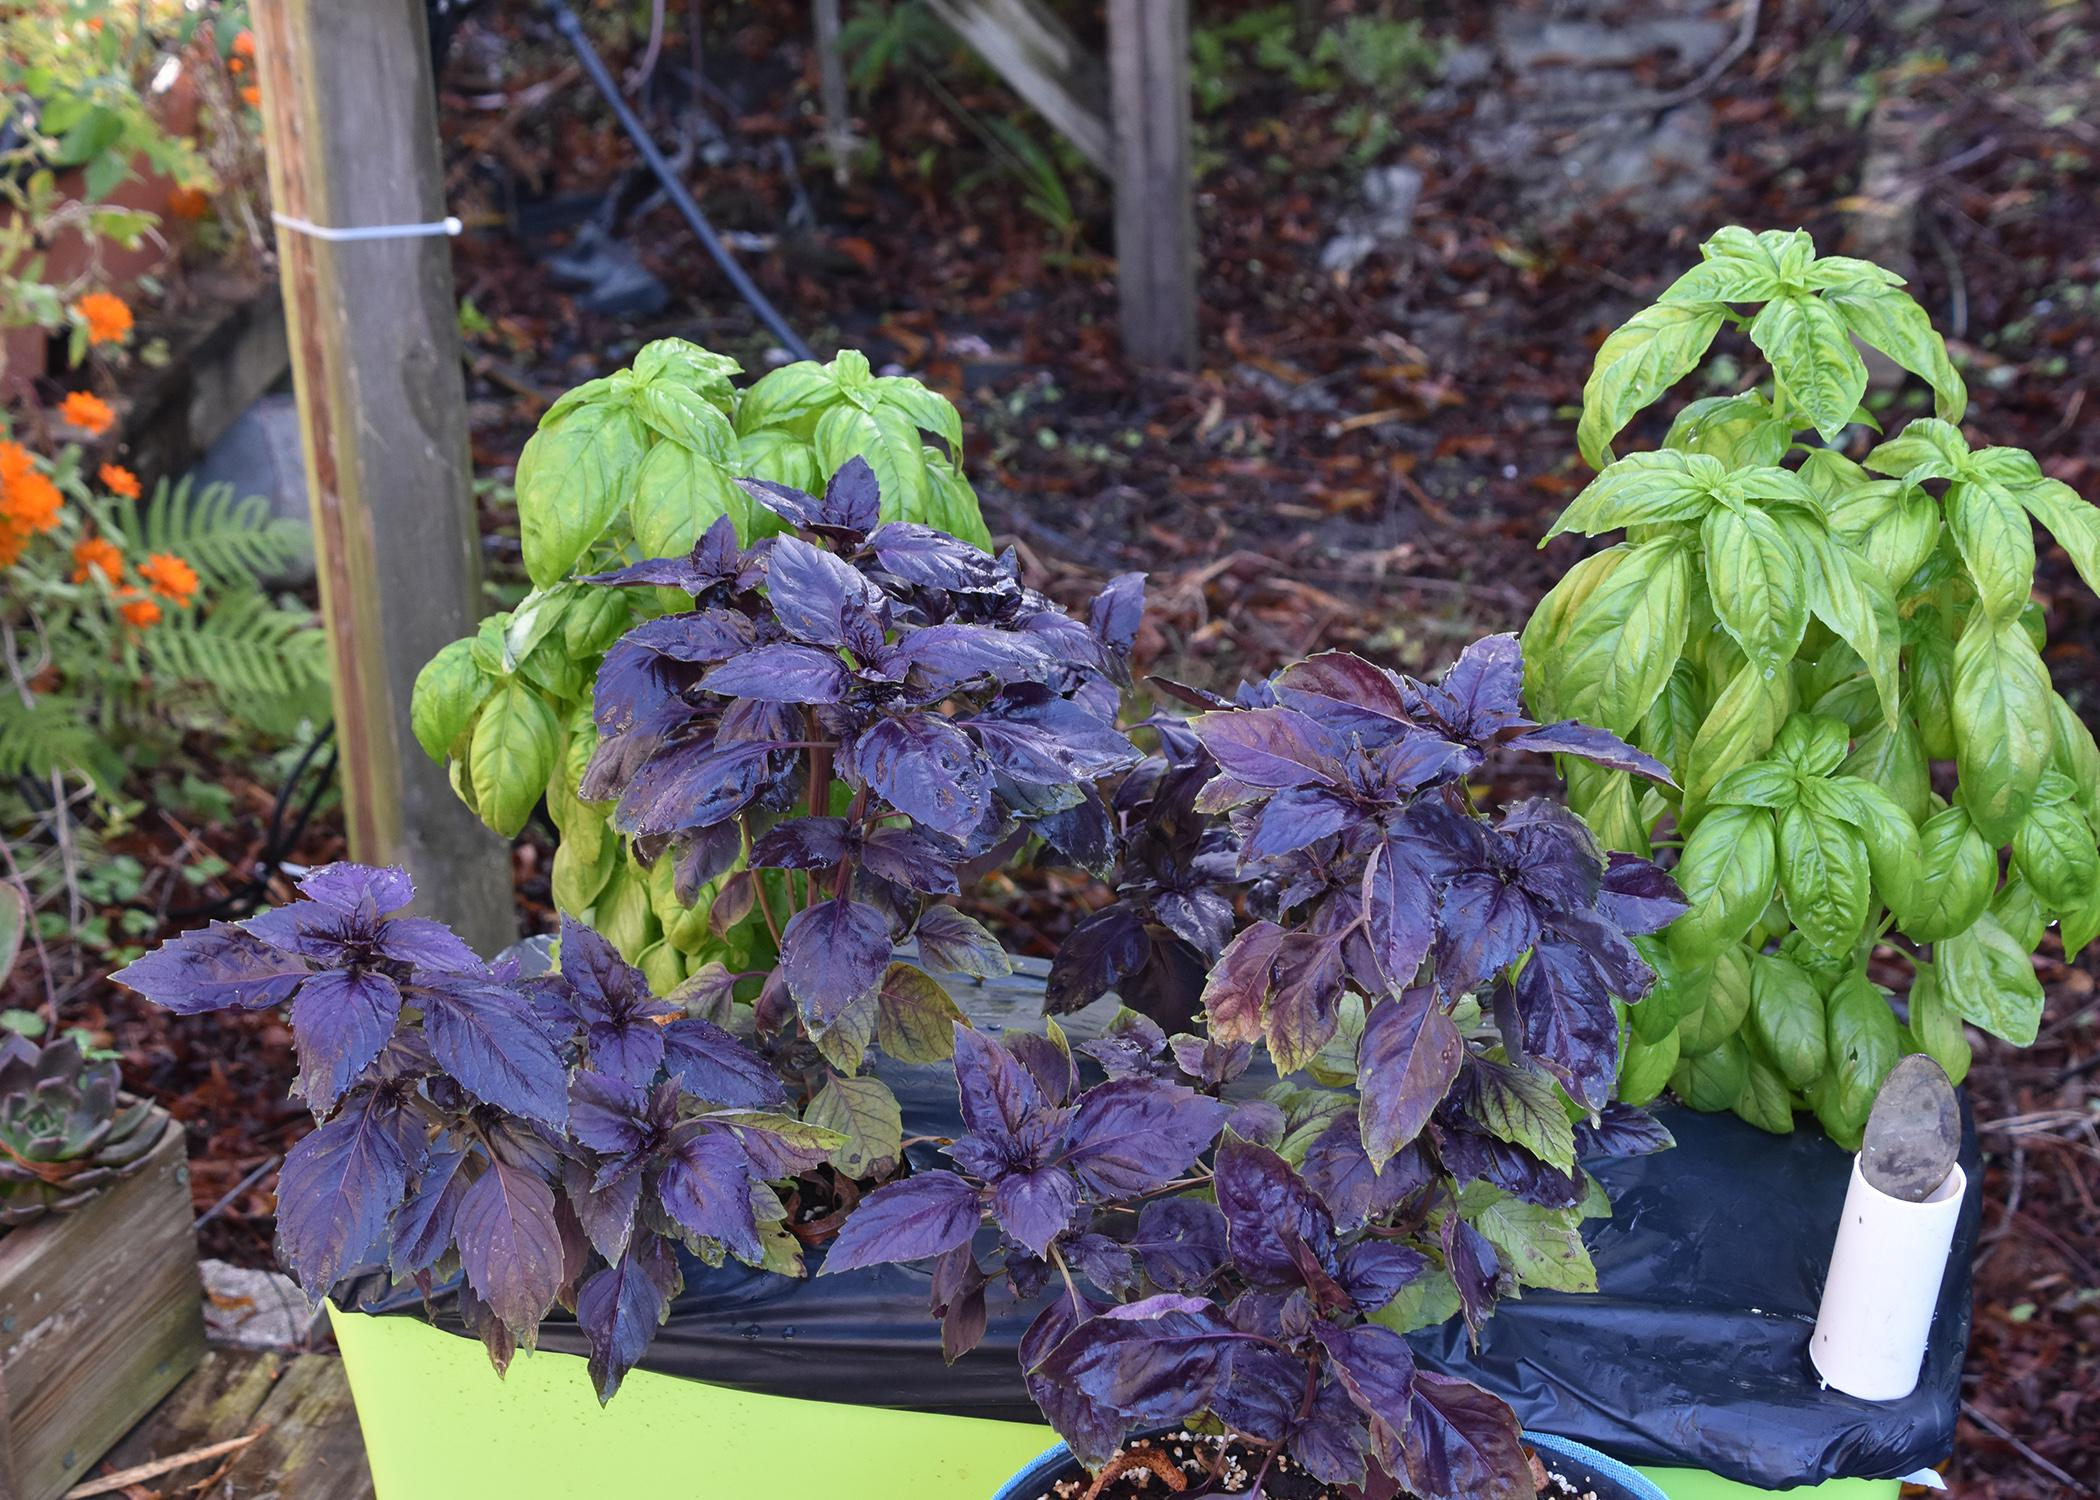 Purple and green plants grow from a rectangular, green container on the ground.